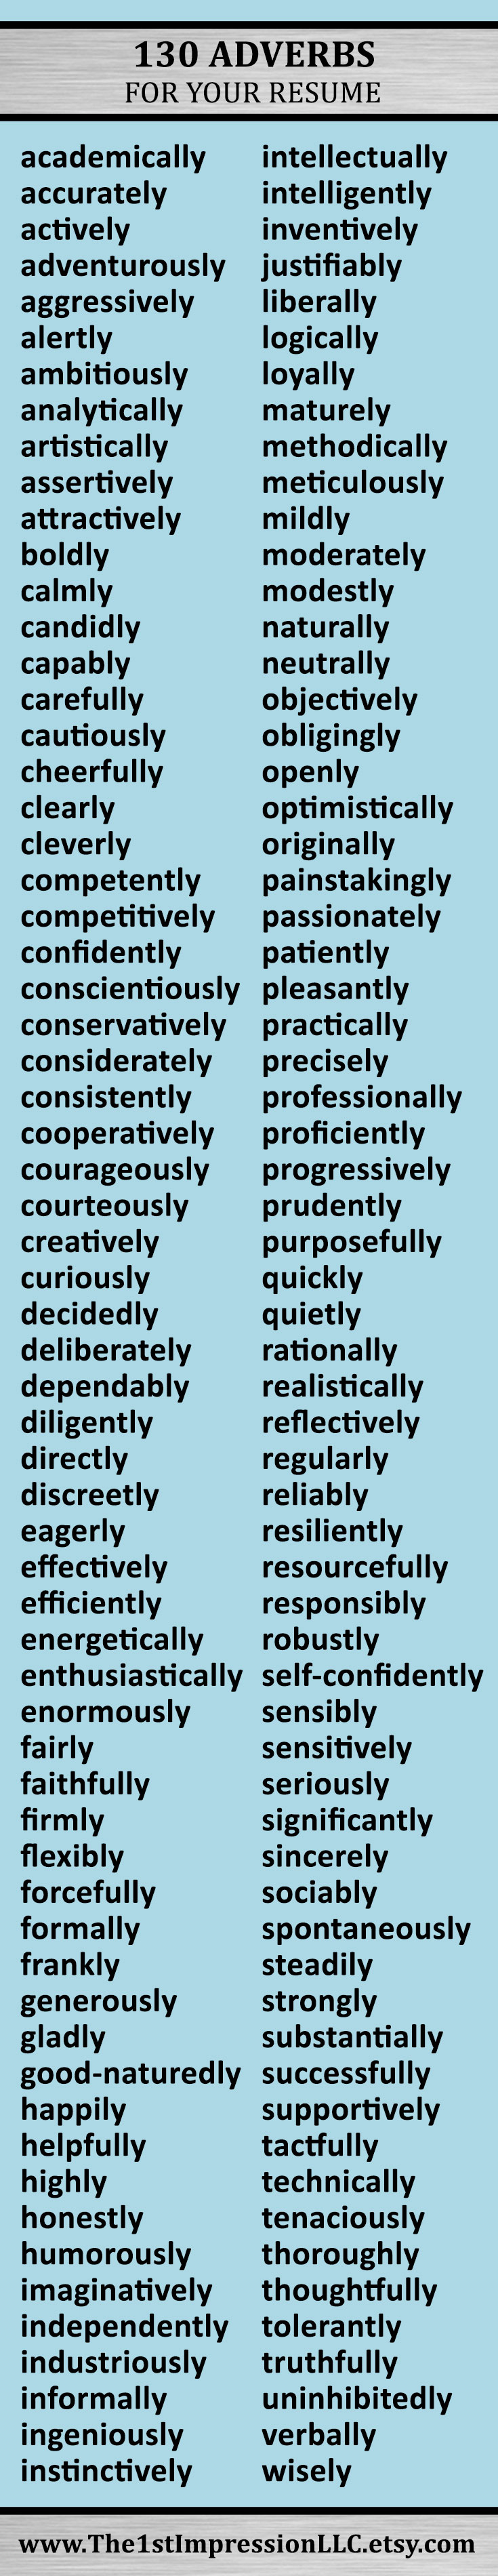 Huge list of 130 adverbs to help you write your resume! | Pinterest ...